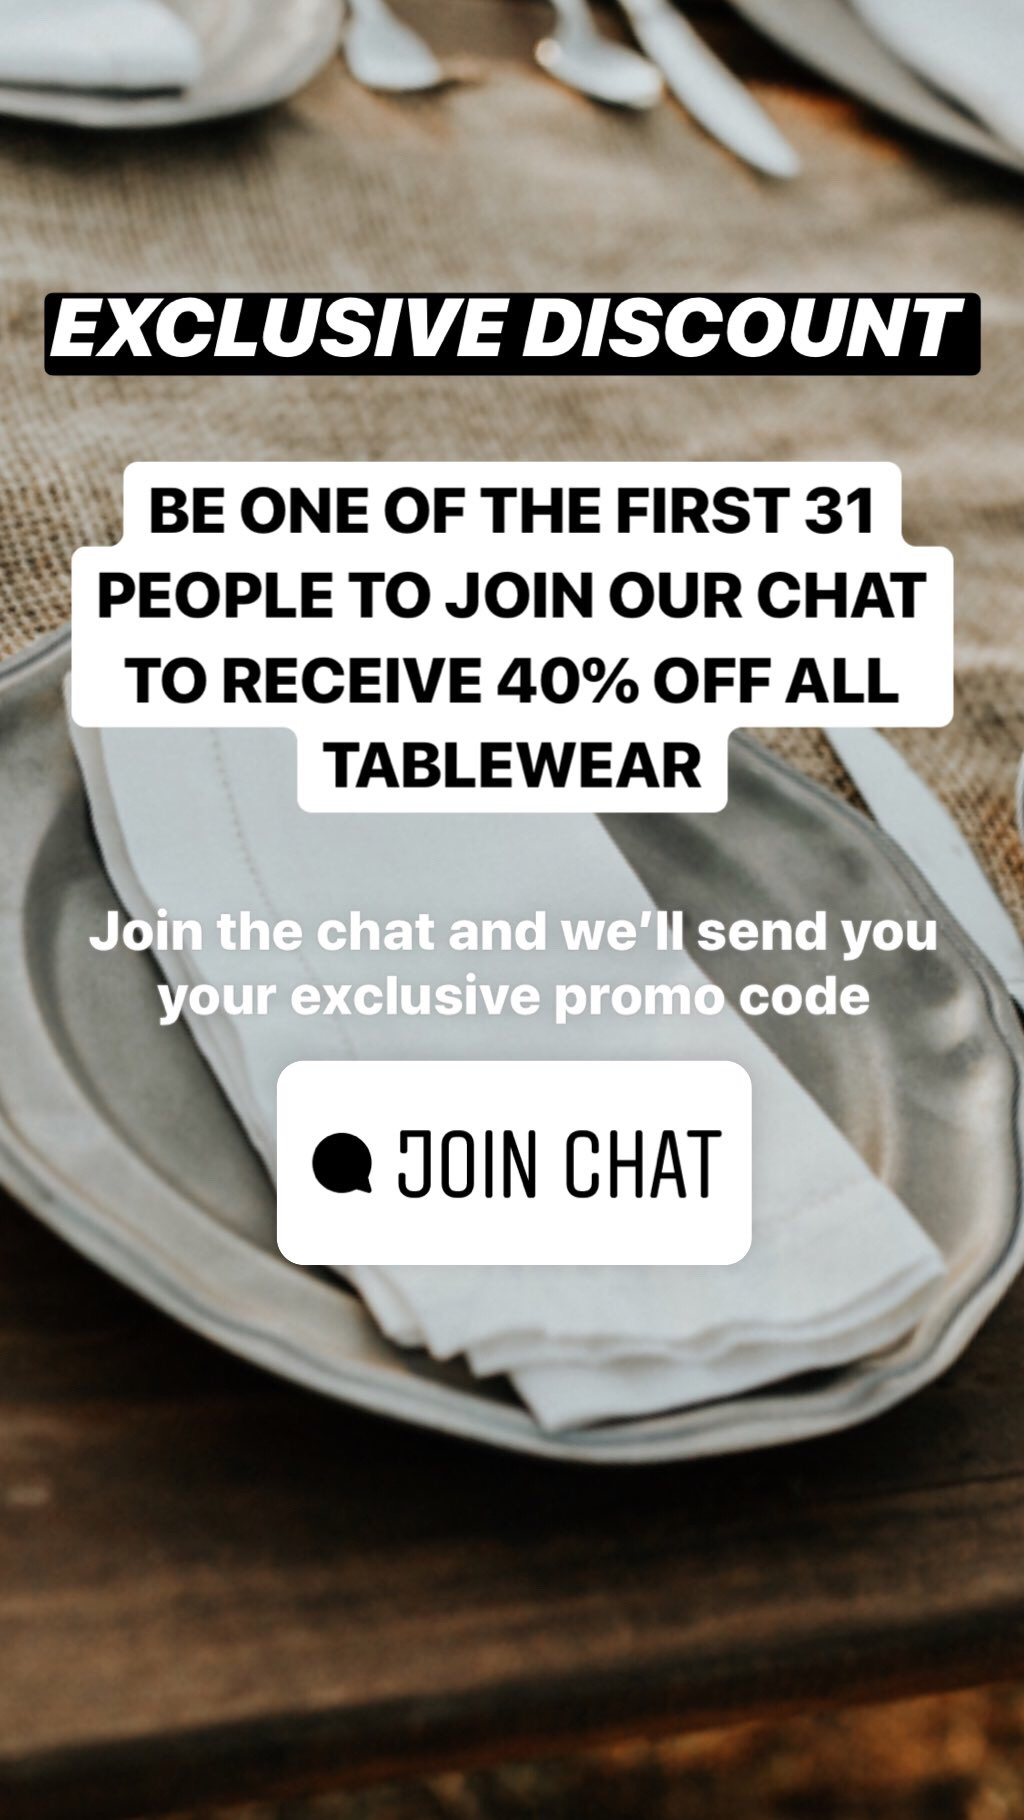 Share an exclusive promo code